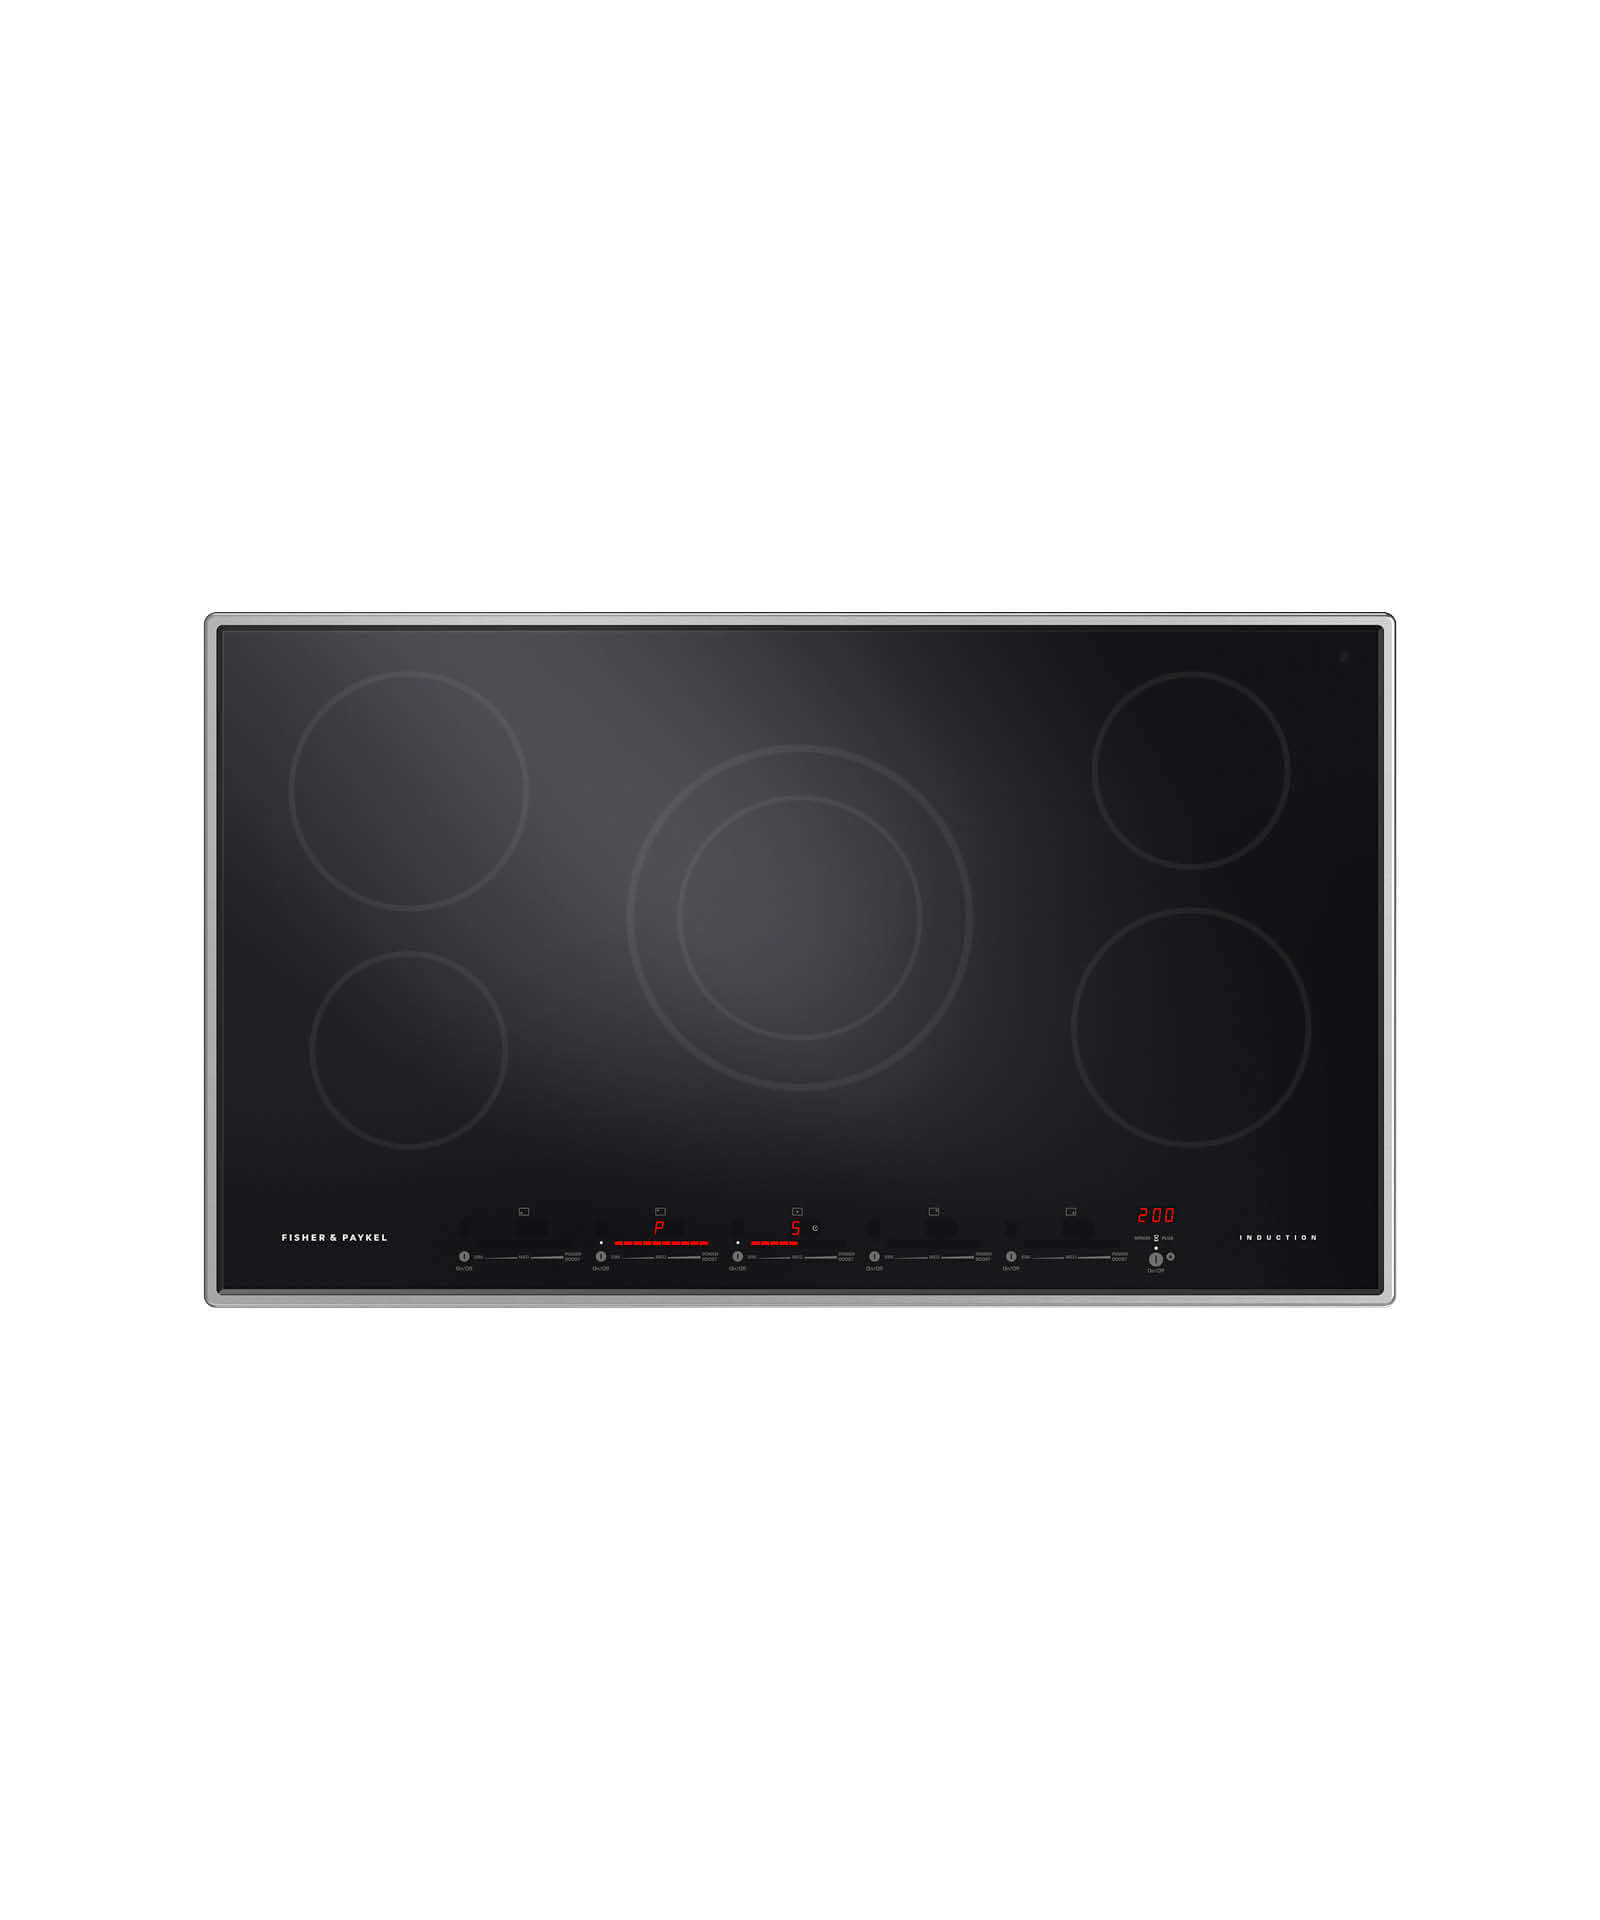 "Fisher and Paykel Induction Cooktop 36"" 5 Zone, Dual Zone"